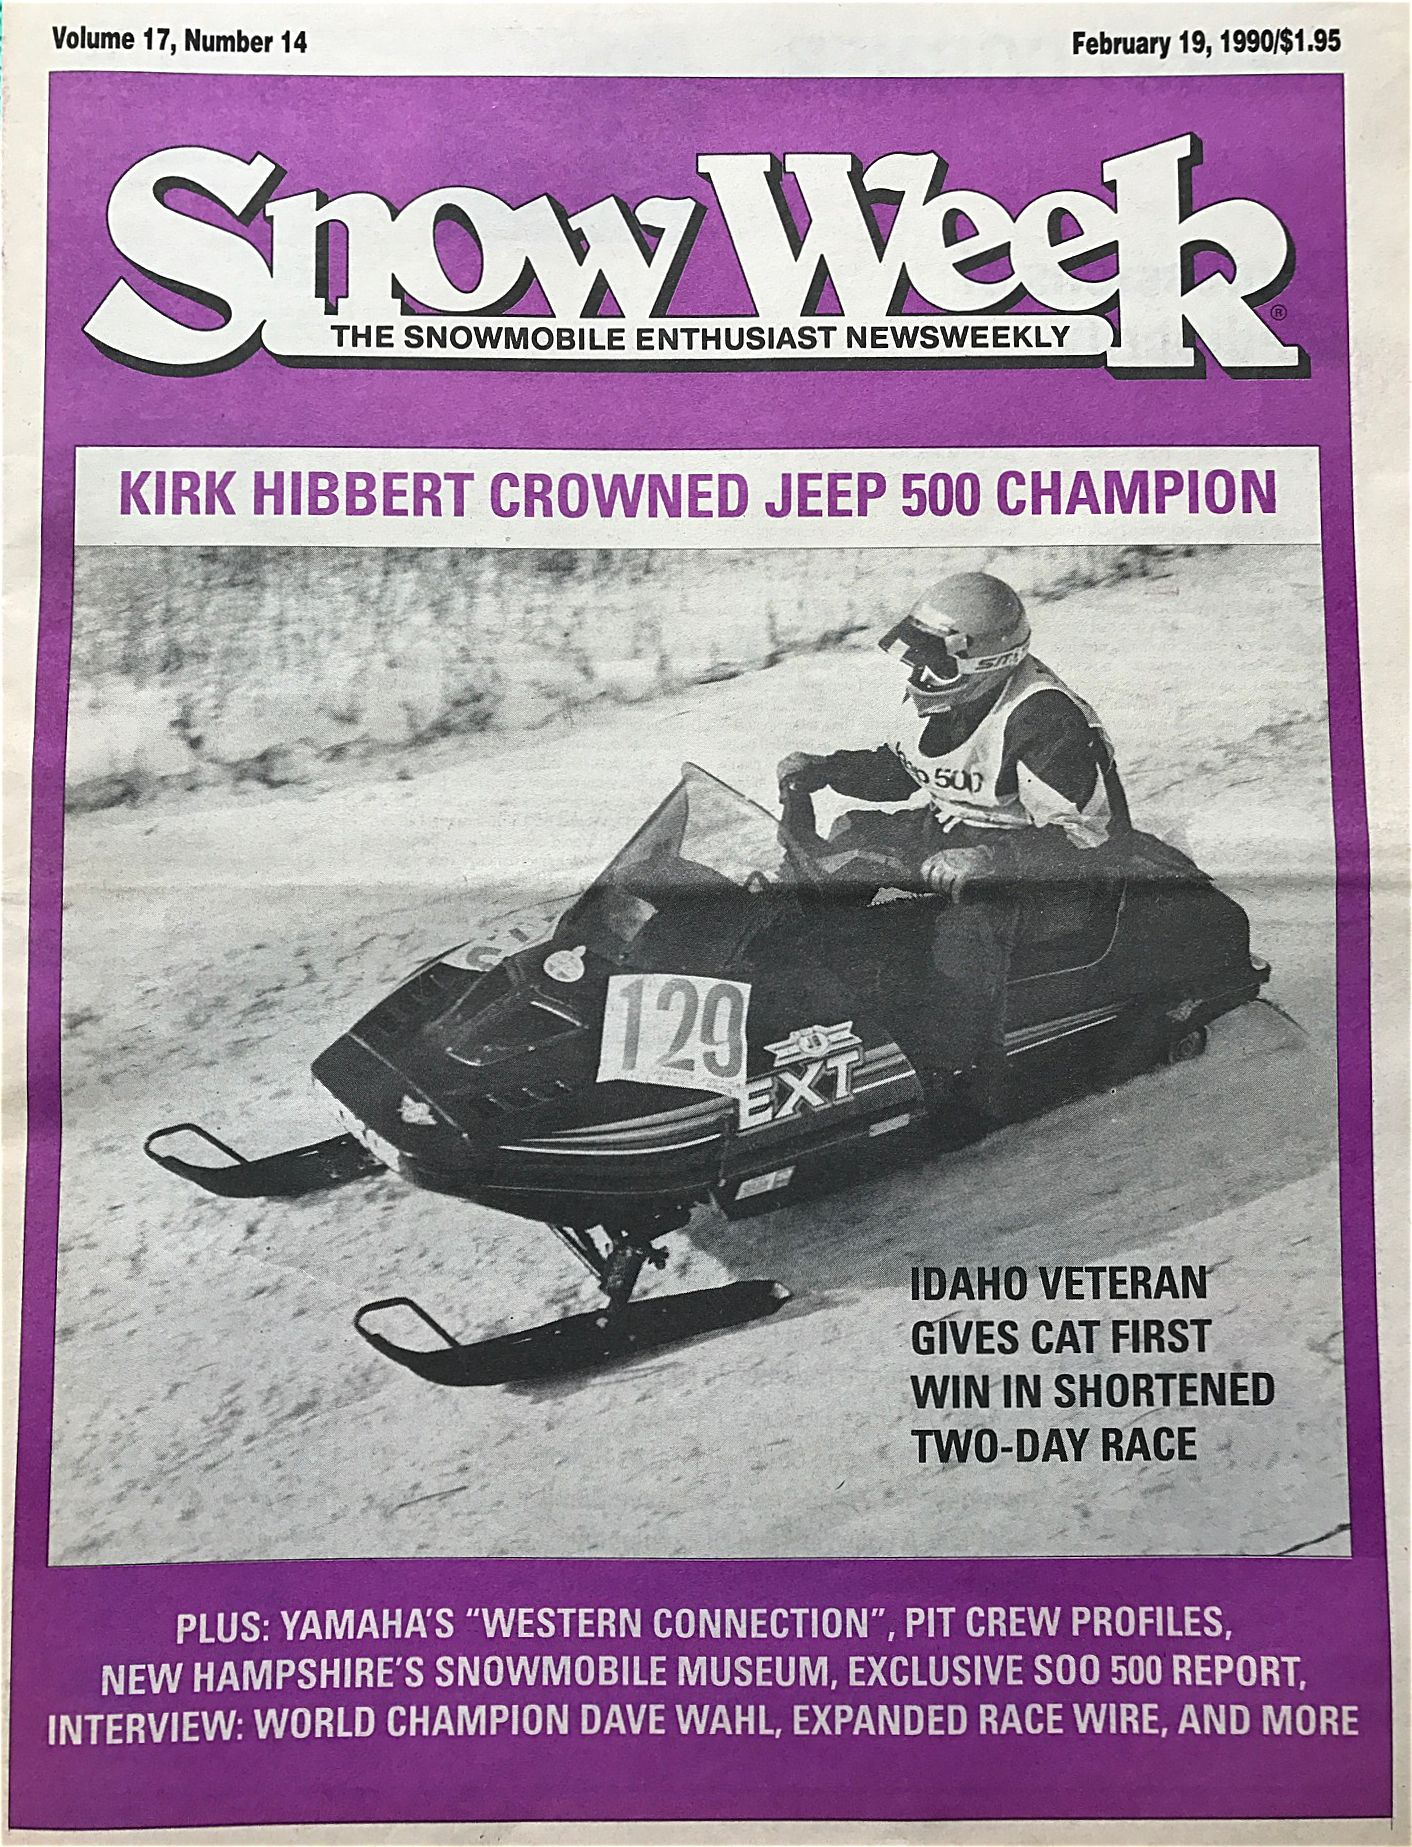 Snow Week magazine with Kirk Hibbert's win in the 1990 Jeep 500.